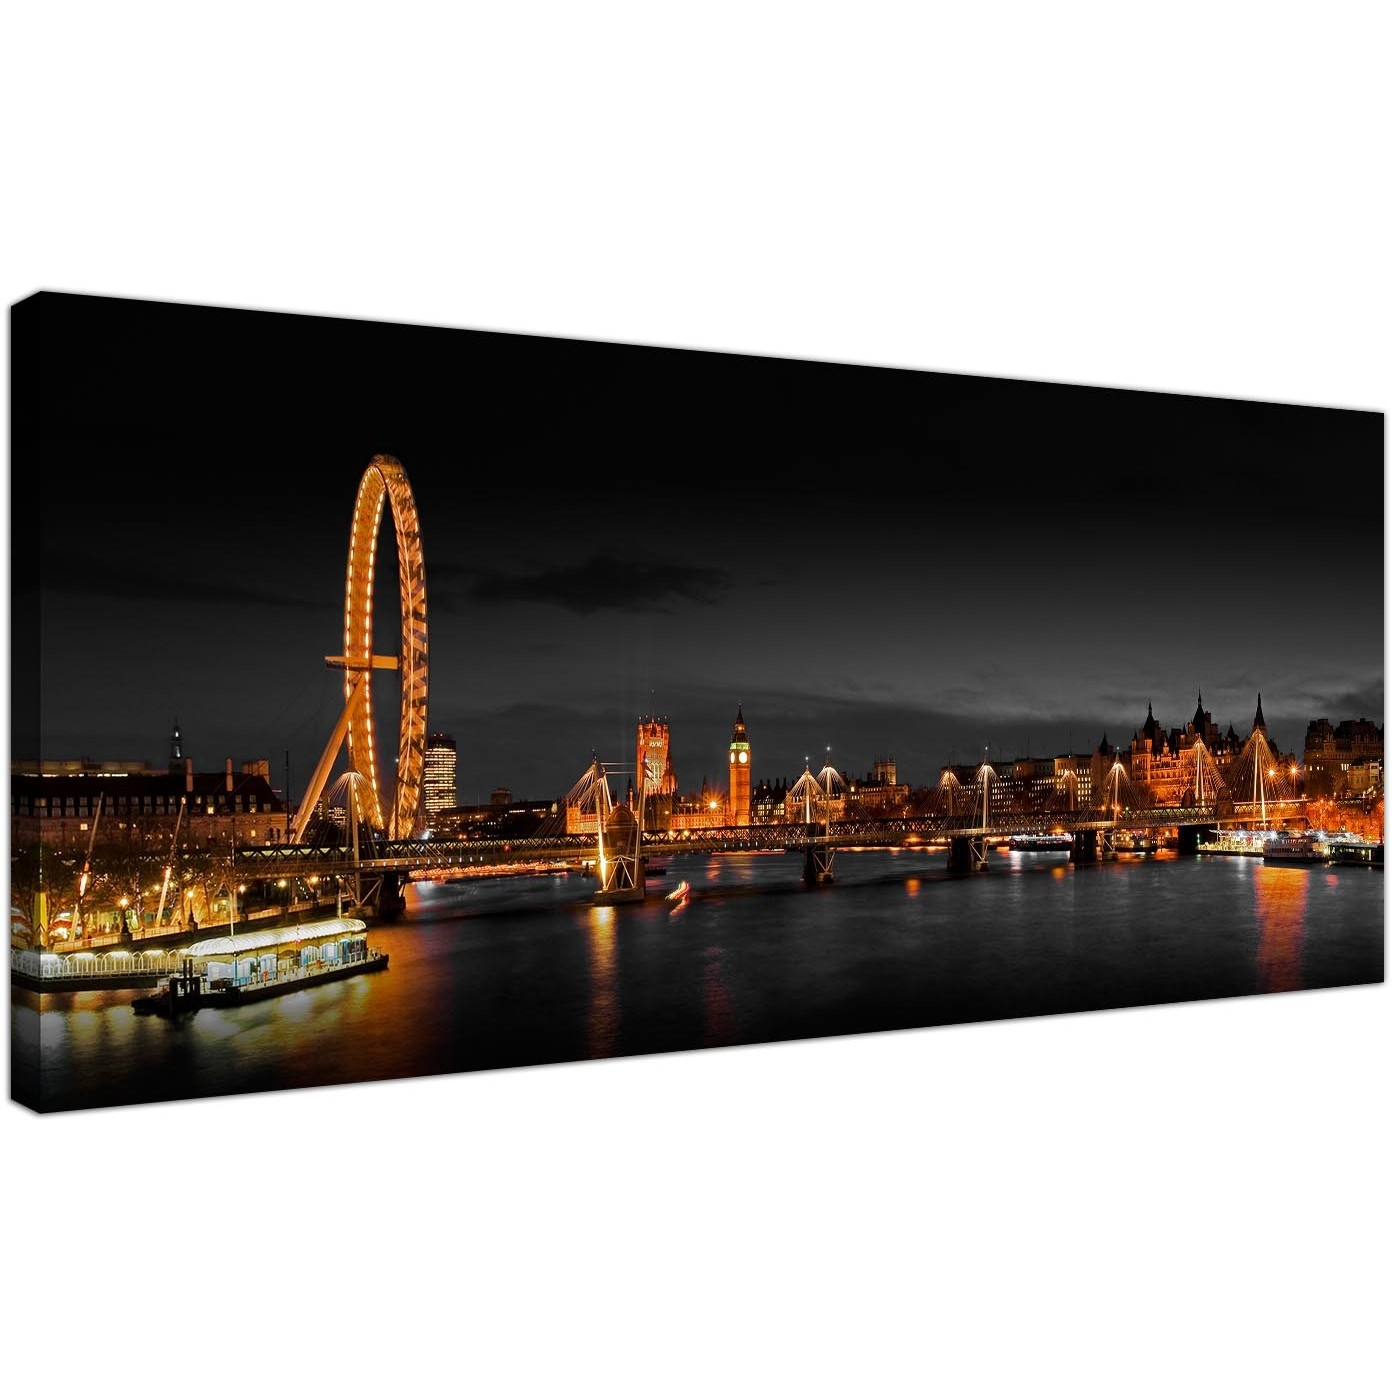 Panoramic Canvas Wall Art Of London Eye At Night For Your Living Room With Most Recently Released Panoramic Wall Art (Gallery 3 of 15)